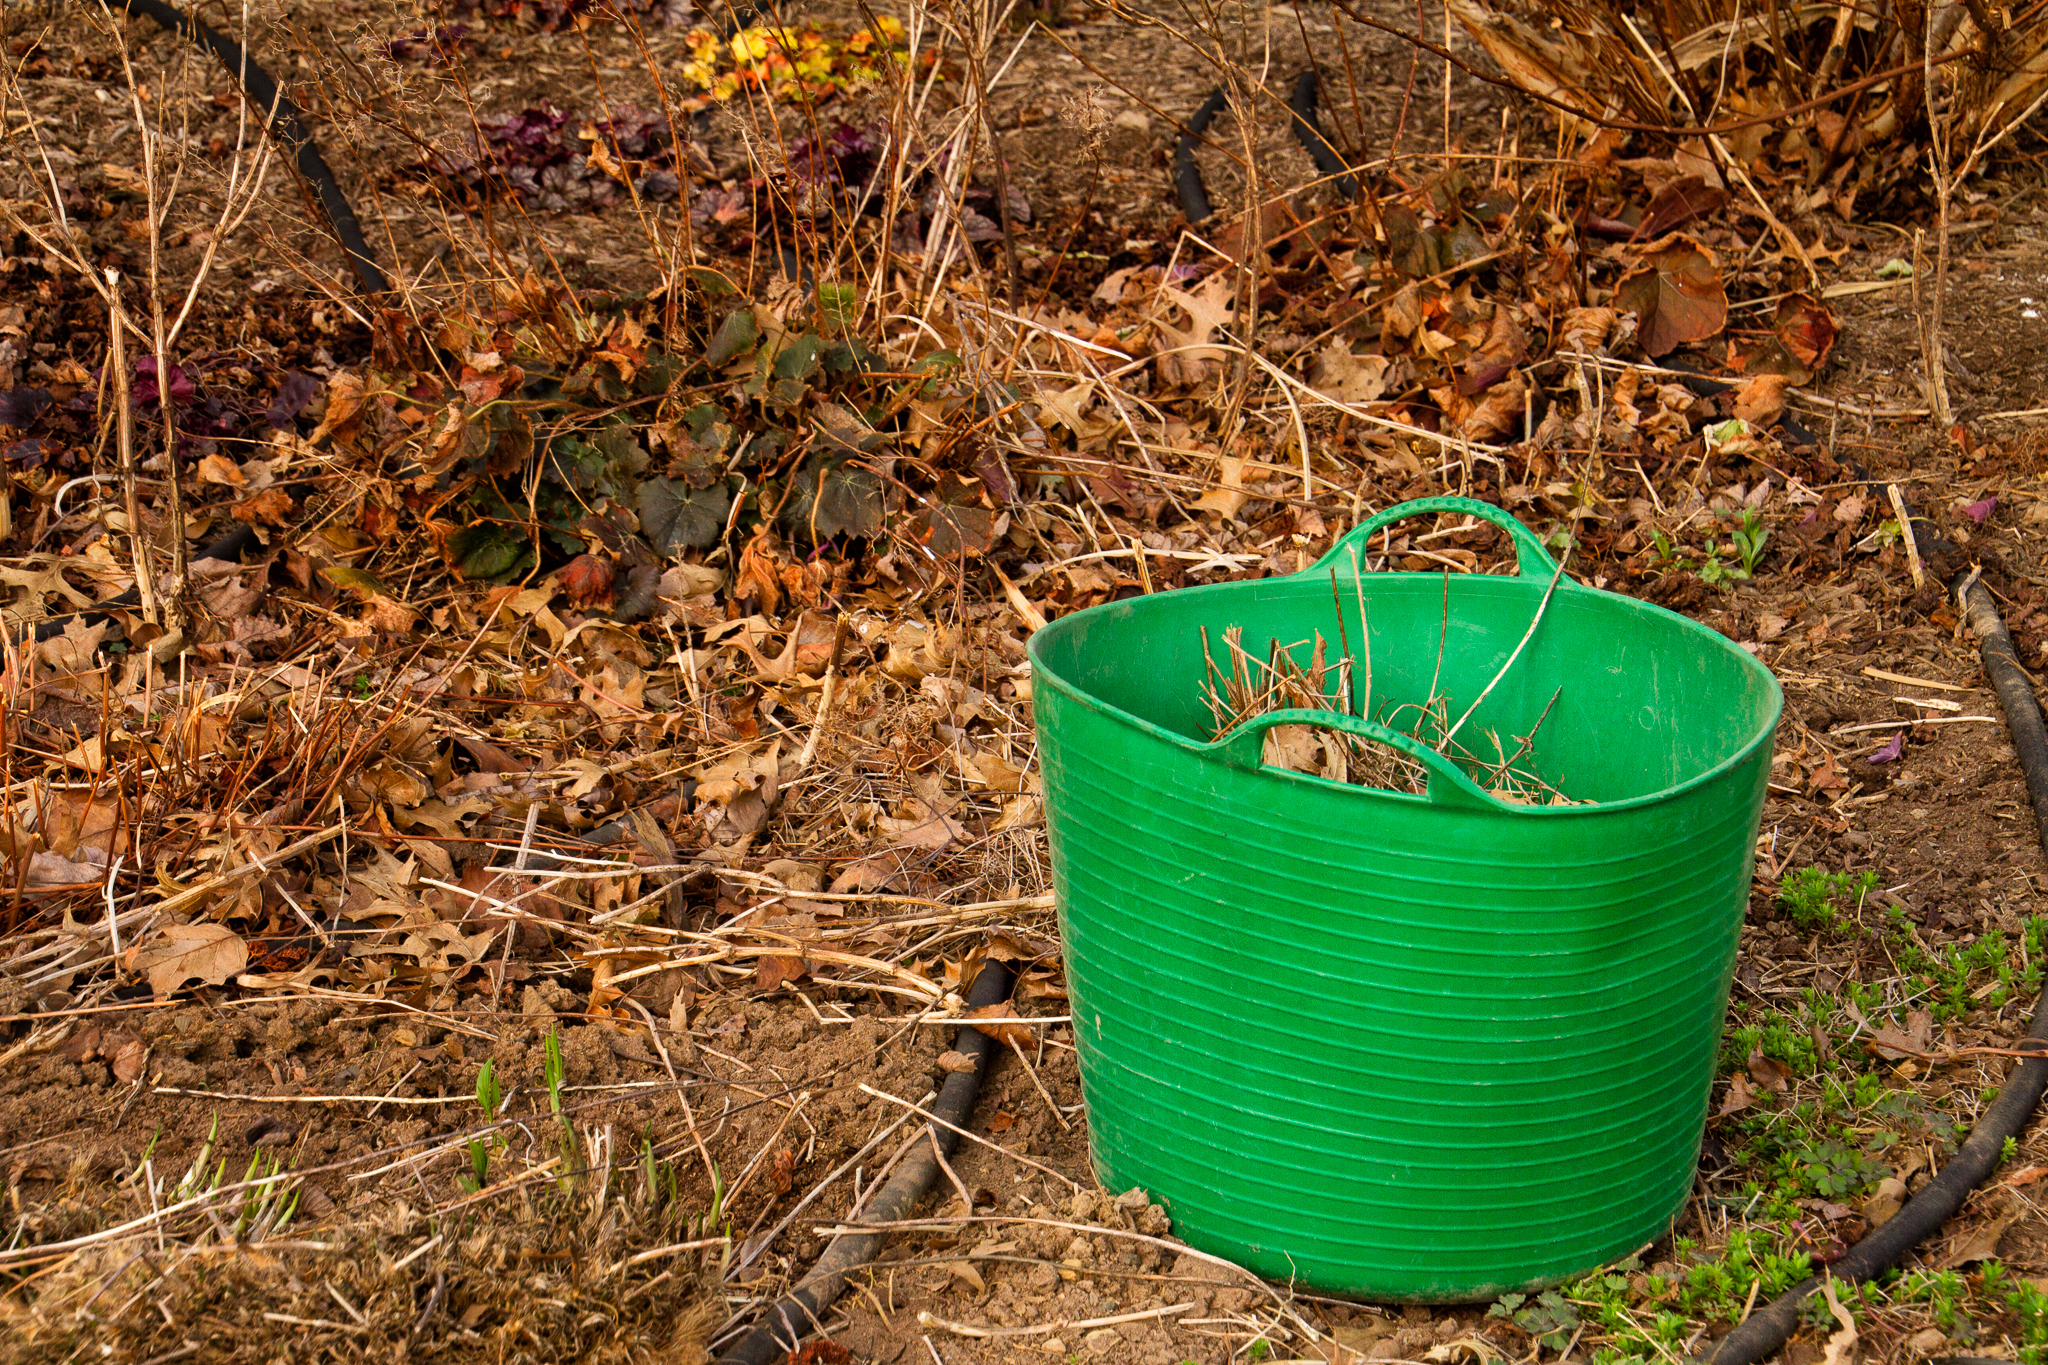 1304125_Spring_GreenBucket by Karl G. Graf.